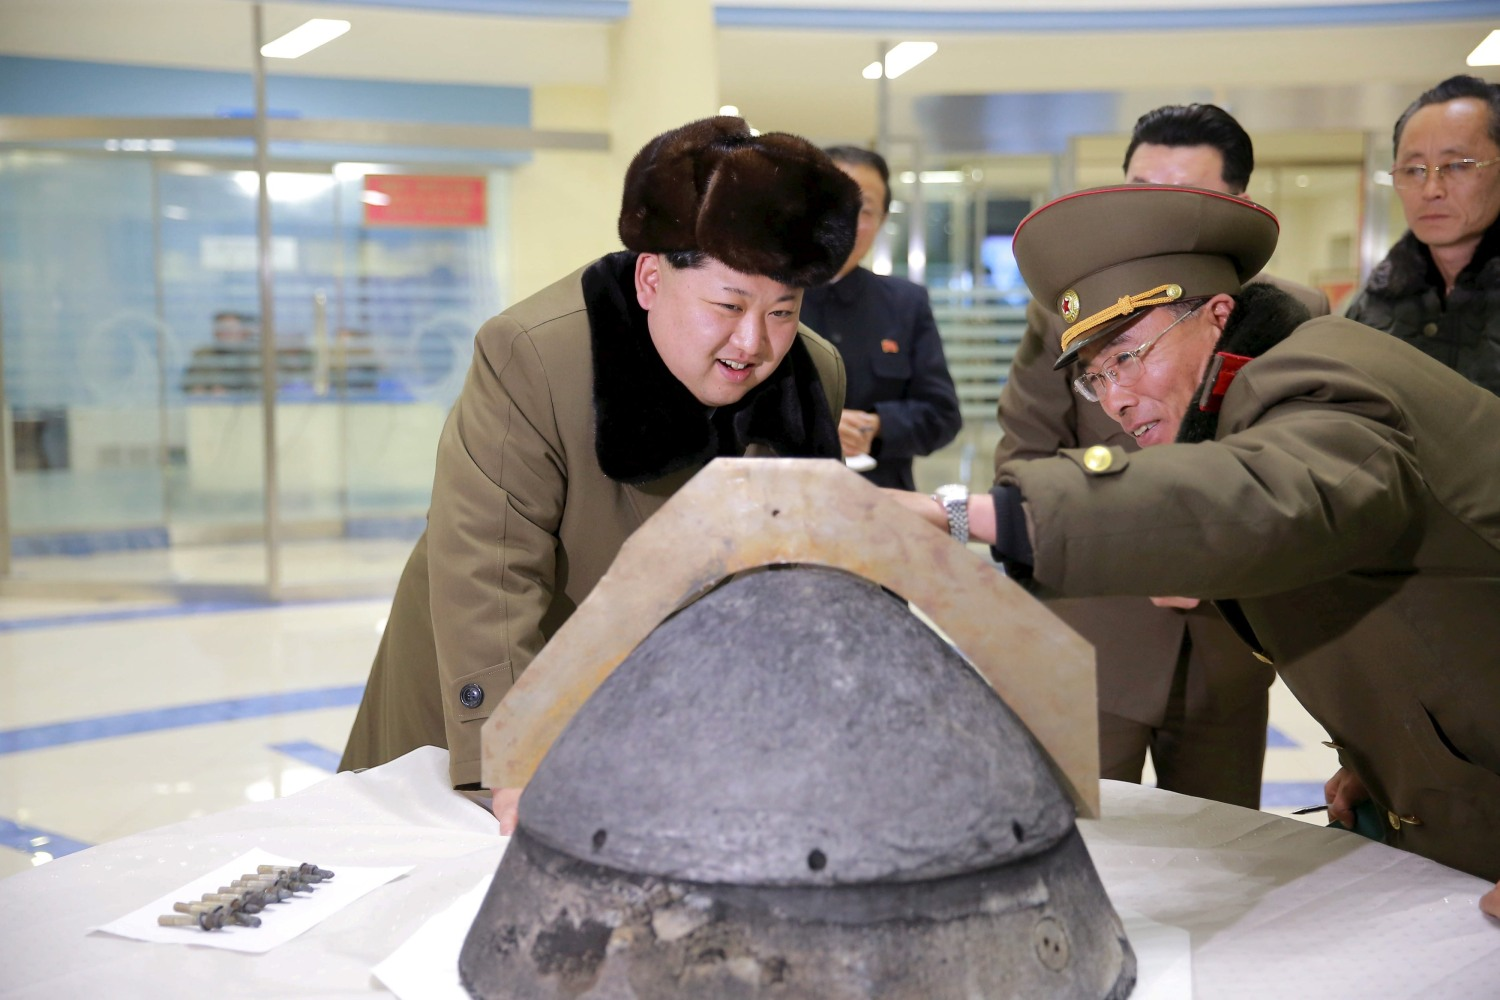 North Korea Ready to Conduct Nuclear Test, US Officials Say